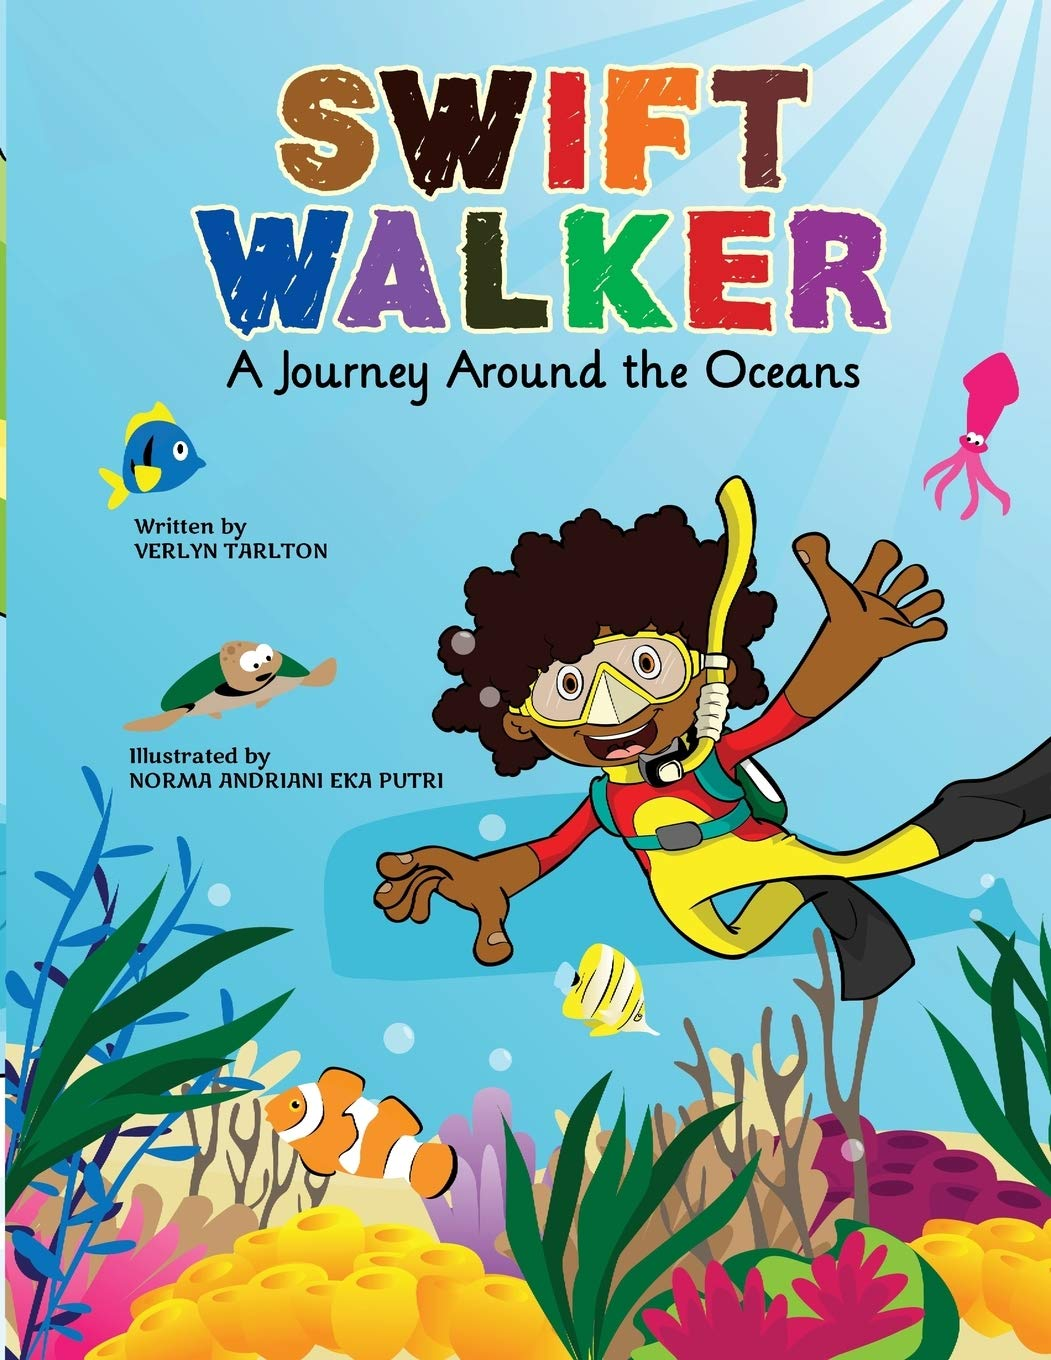 Image OfSwift Walker: A Journey Around The Oceans: Science And Geography Books For Kids (Volume 2)